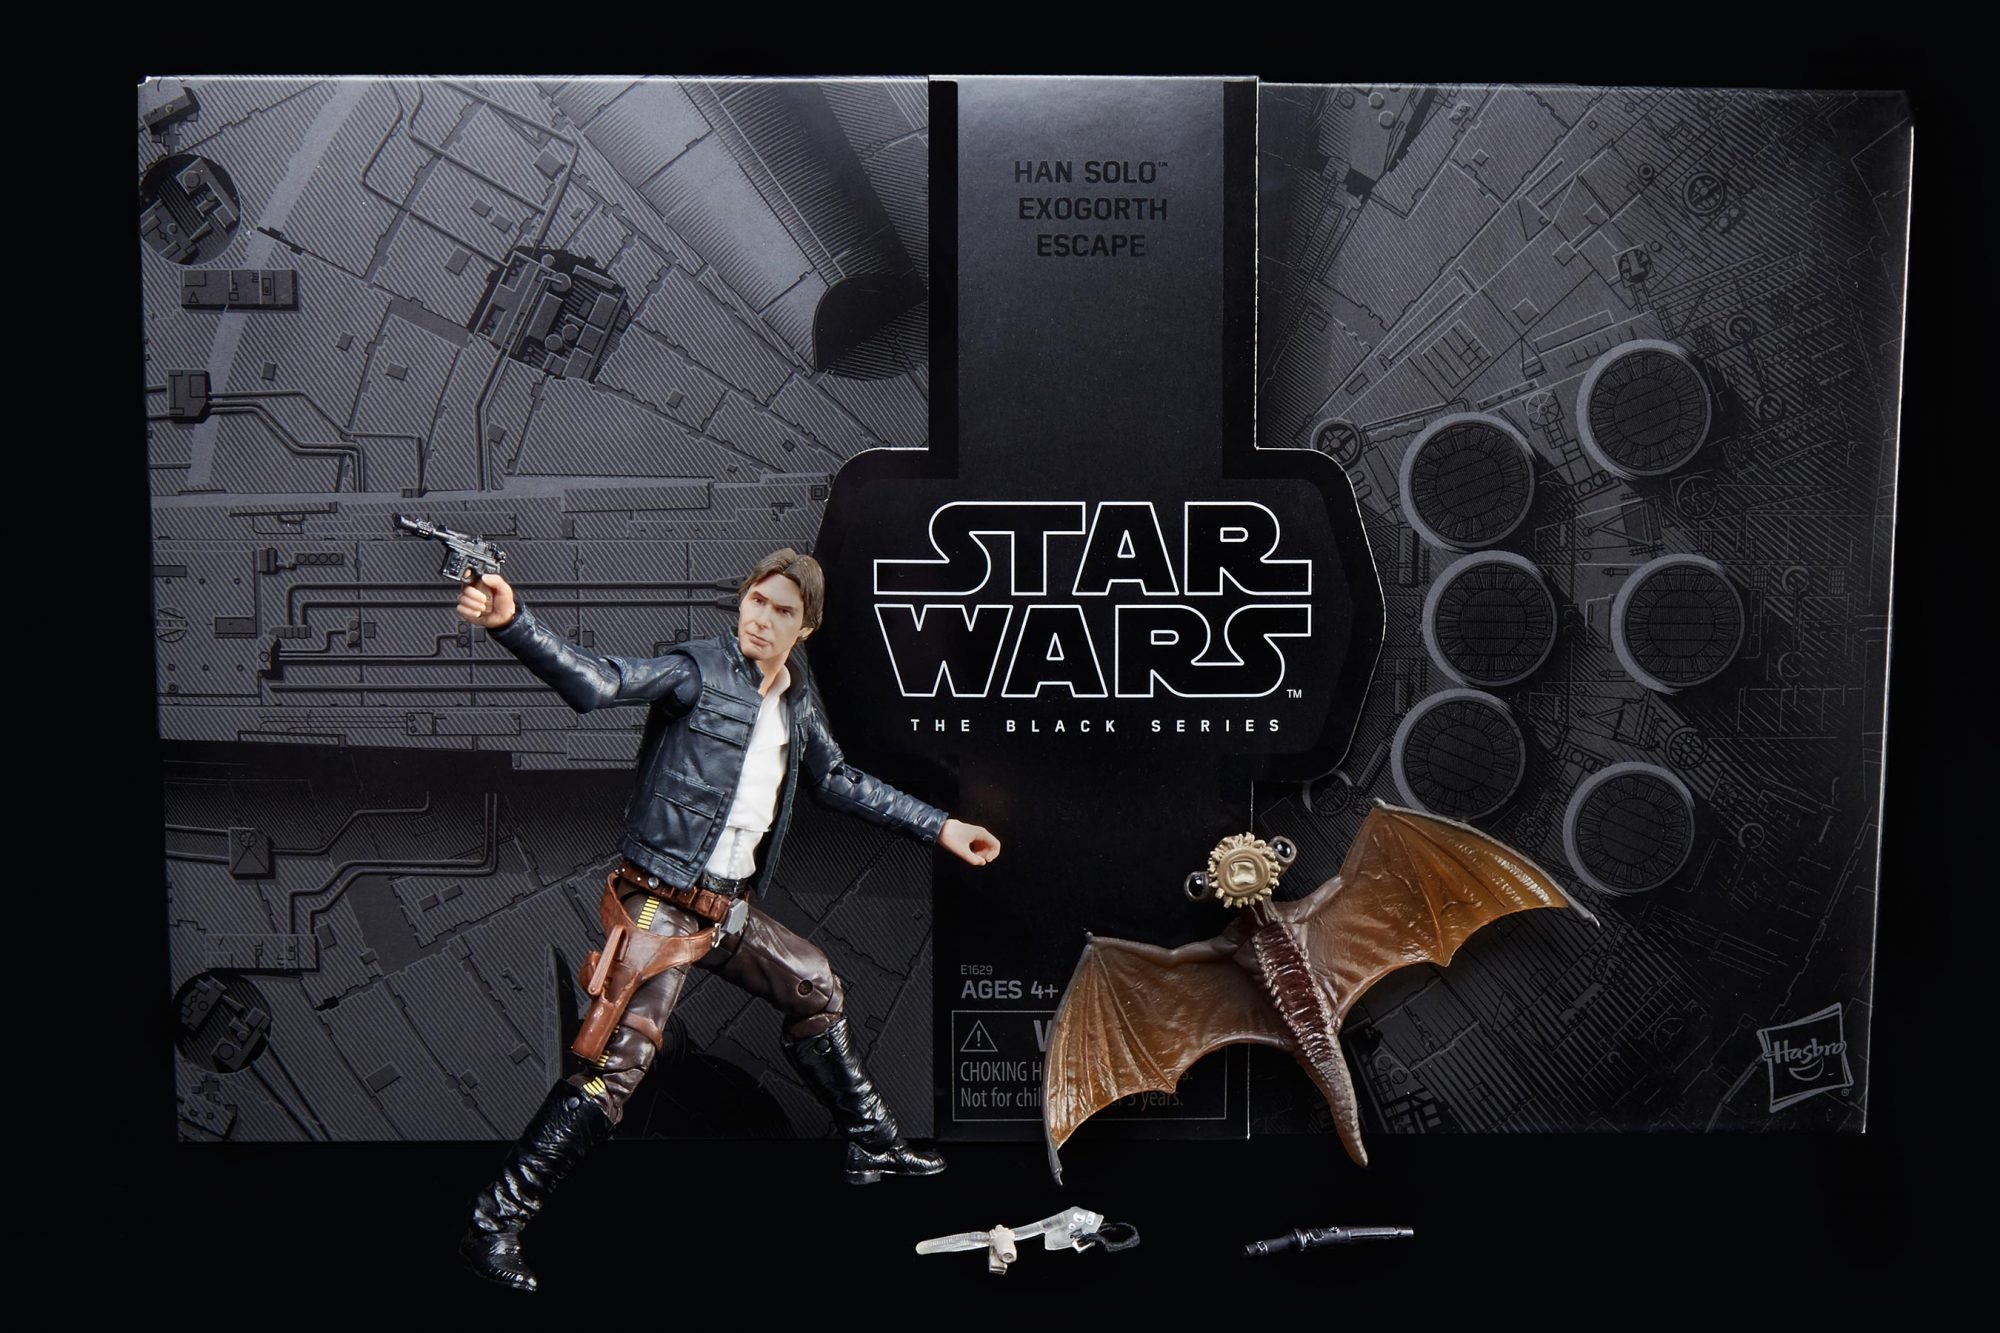 Star Wars Toys CR: Hasbro